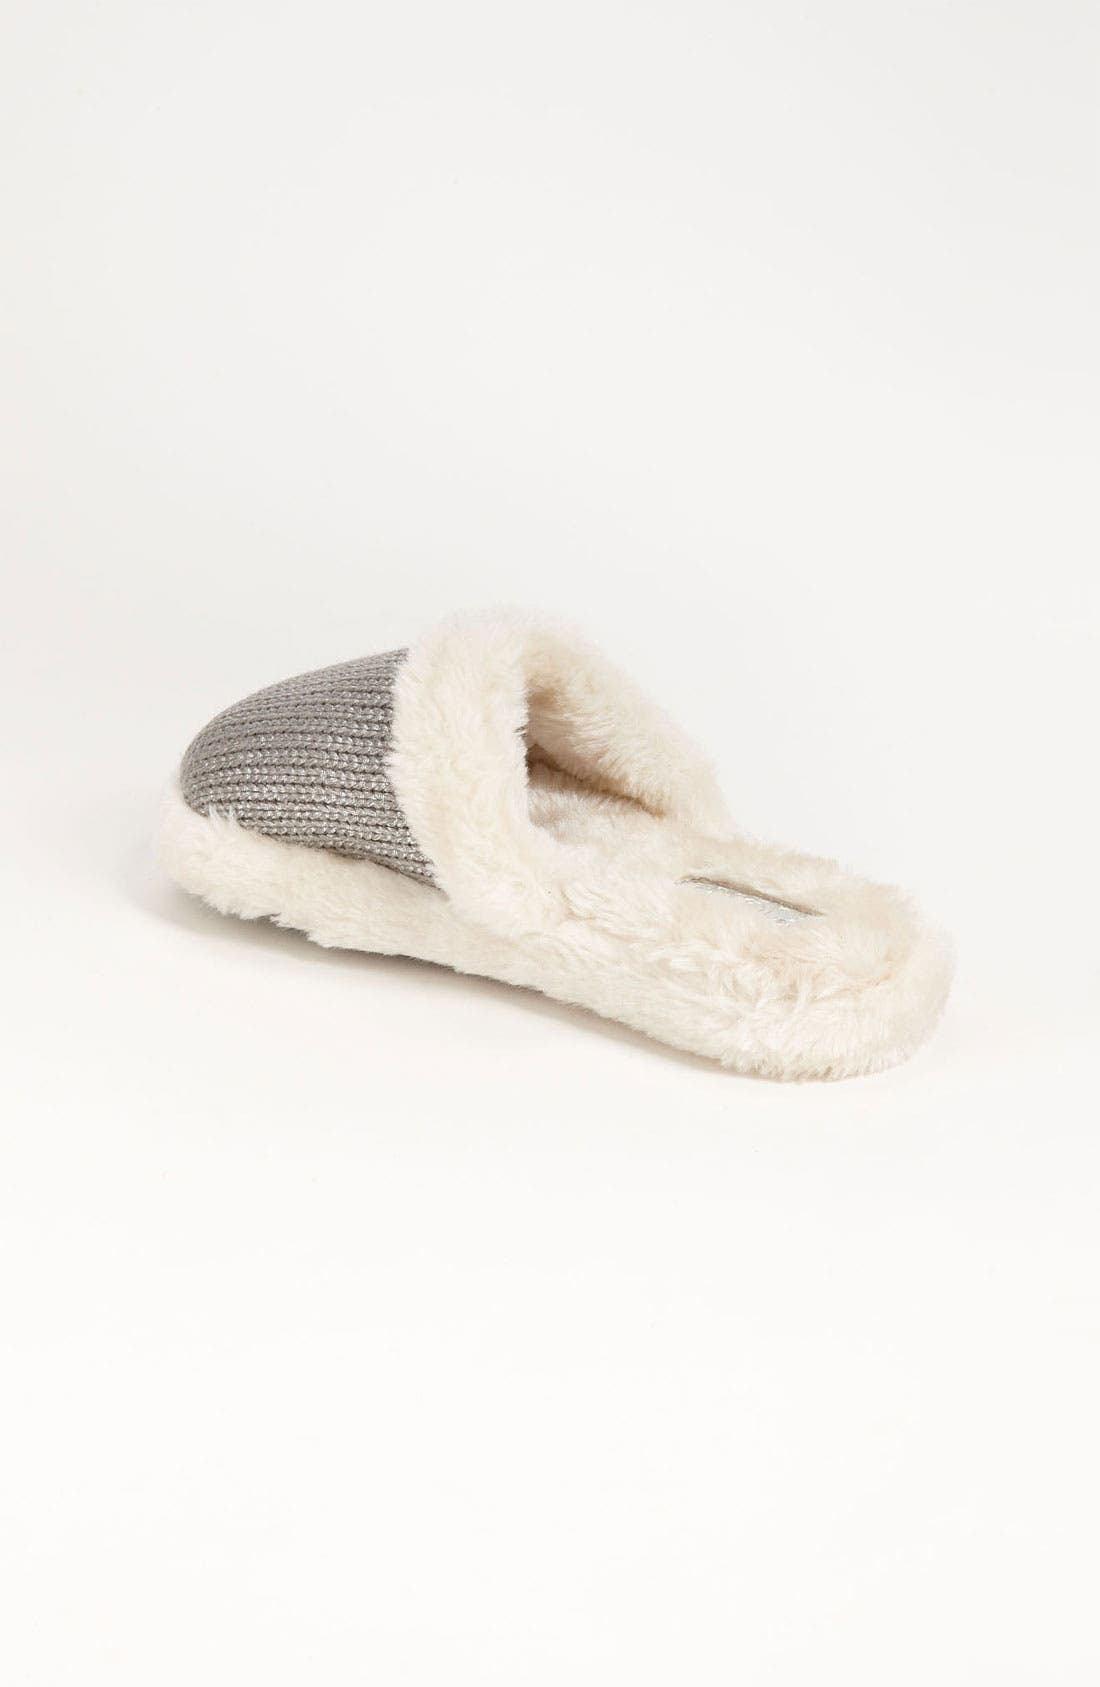 Alternate Image 2  - KORS Michael Kors 'Shiloah' Slipper with Faux Fur Lining (Toddler, Little Kid & Big Kid)